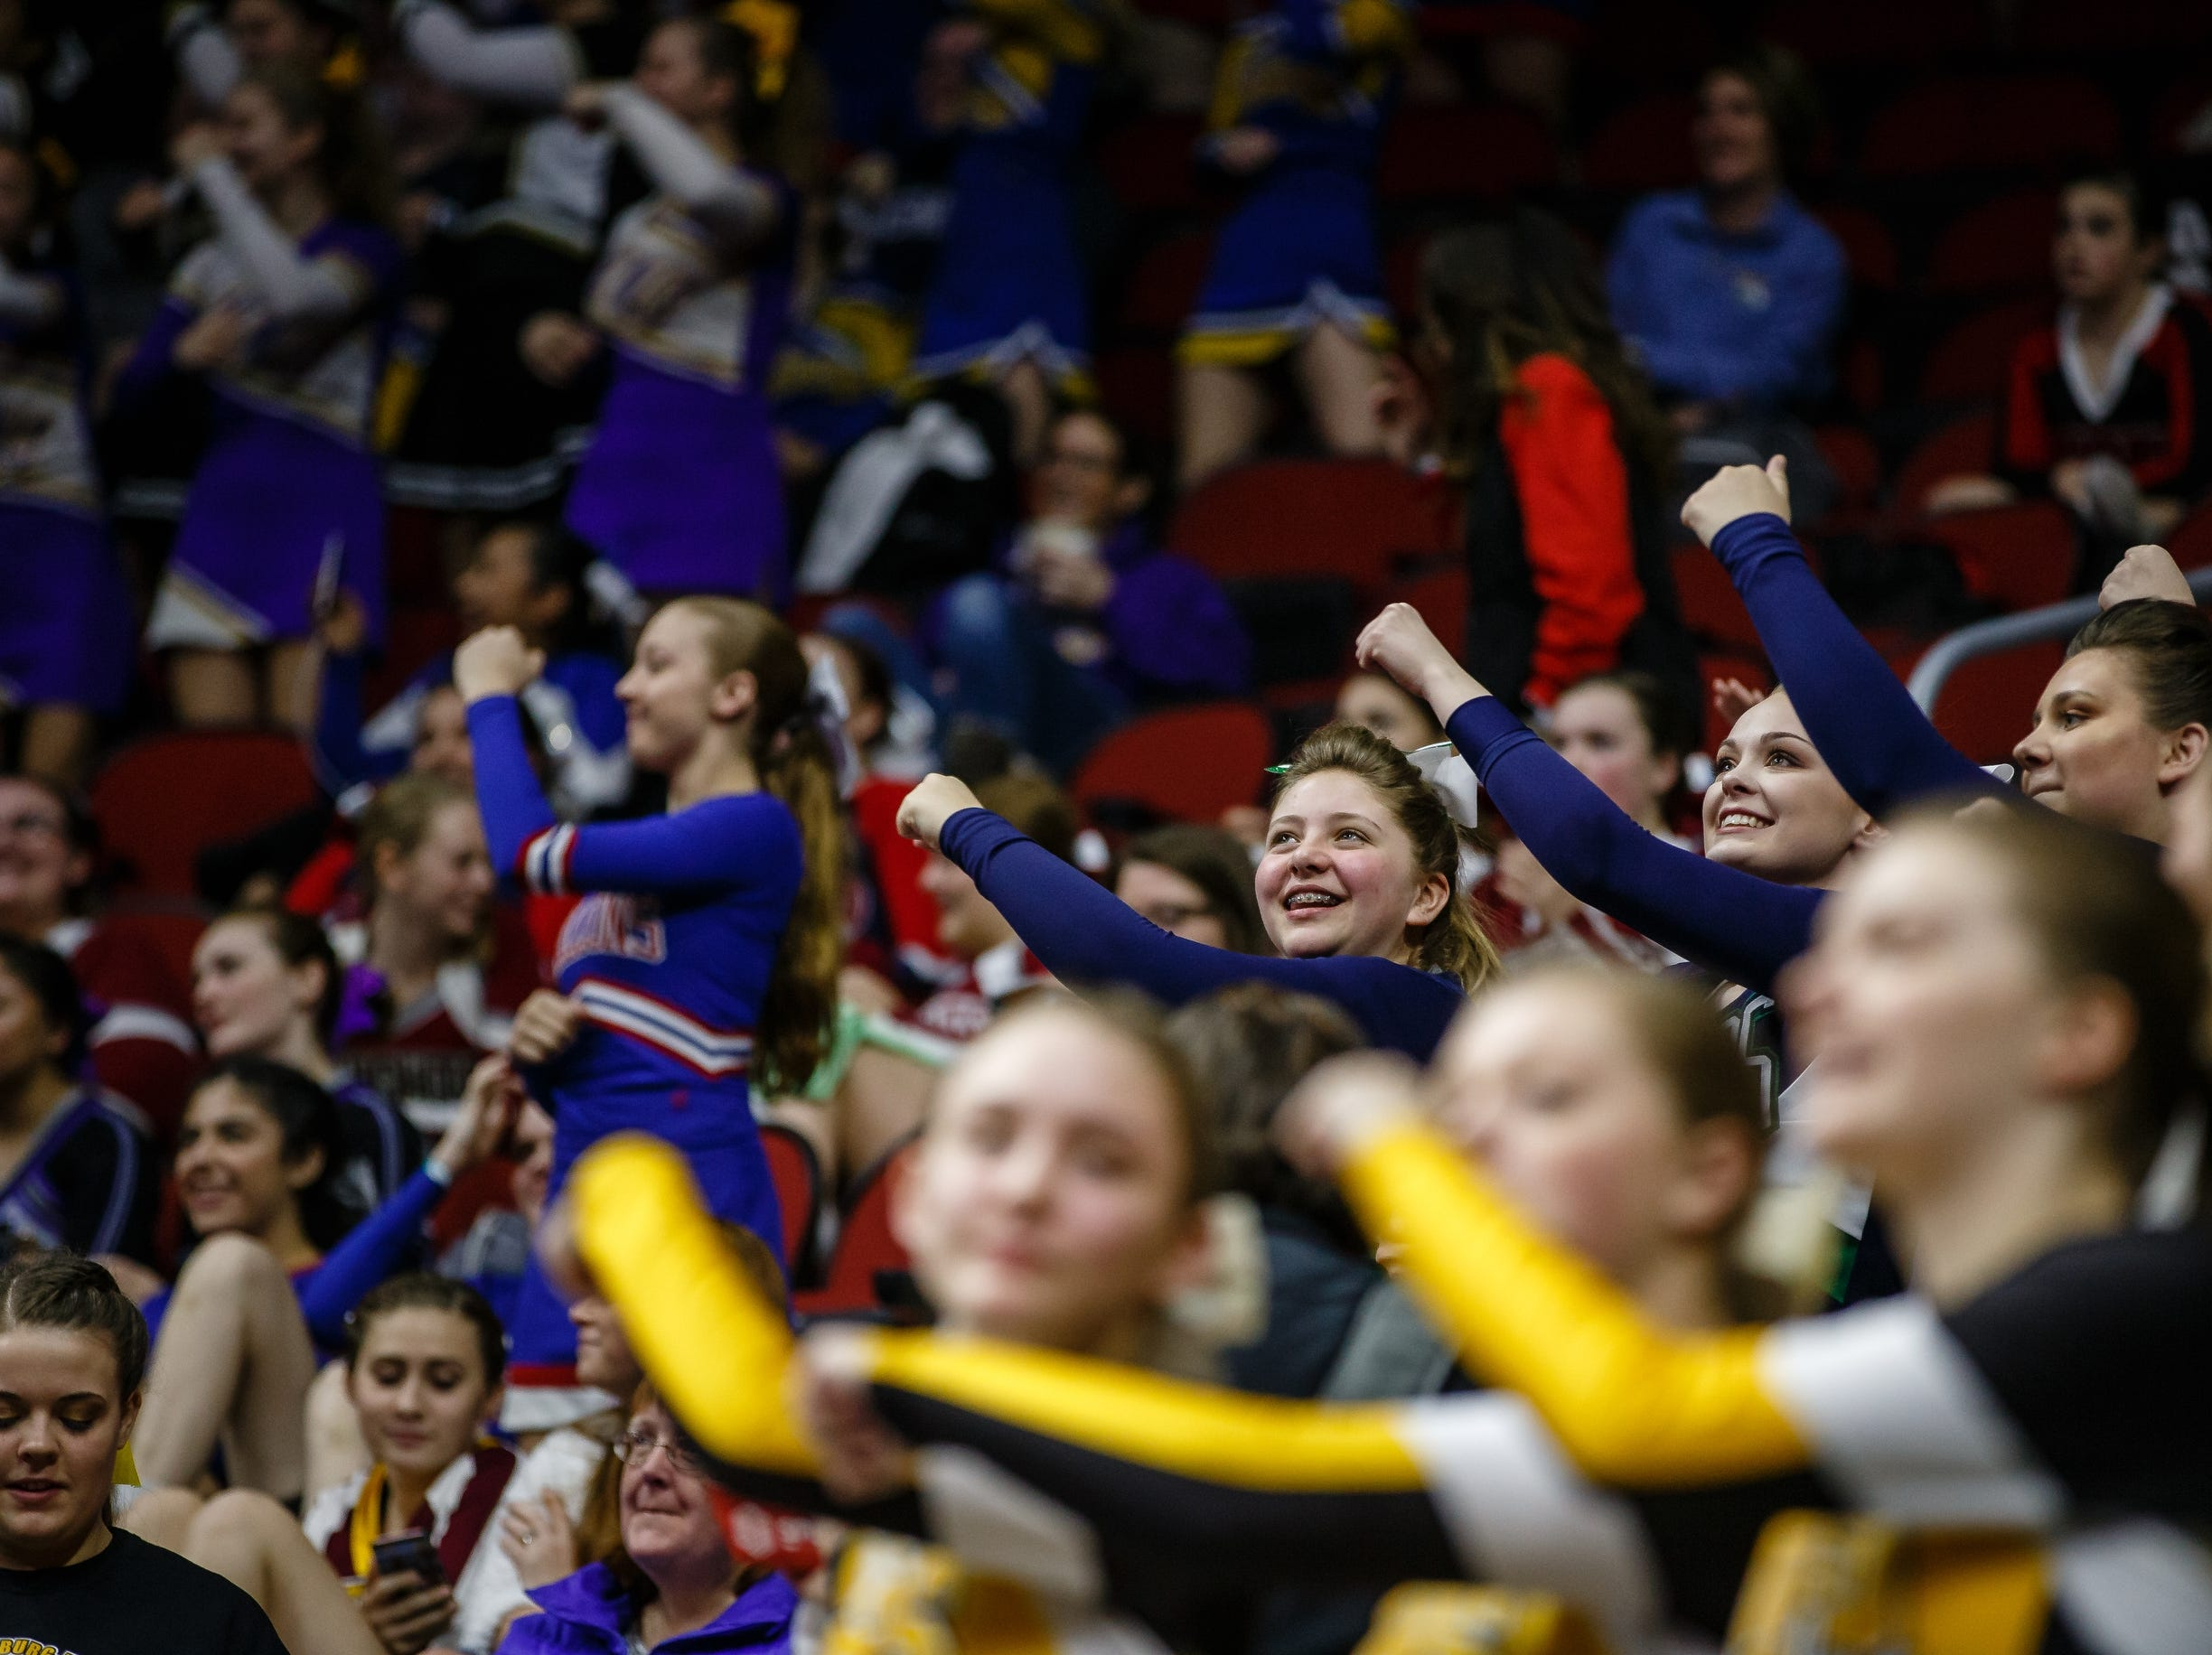 Cheerleaders dance in the stands before the 1A state championship semi-final round on Friday, Feb. 15, 2019 in Des Moines.